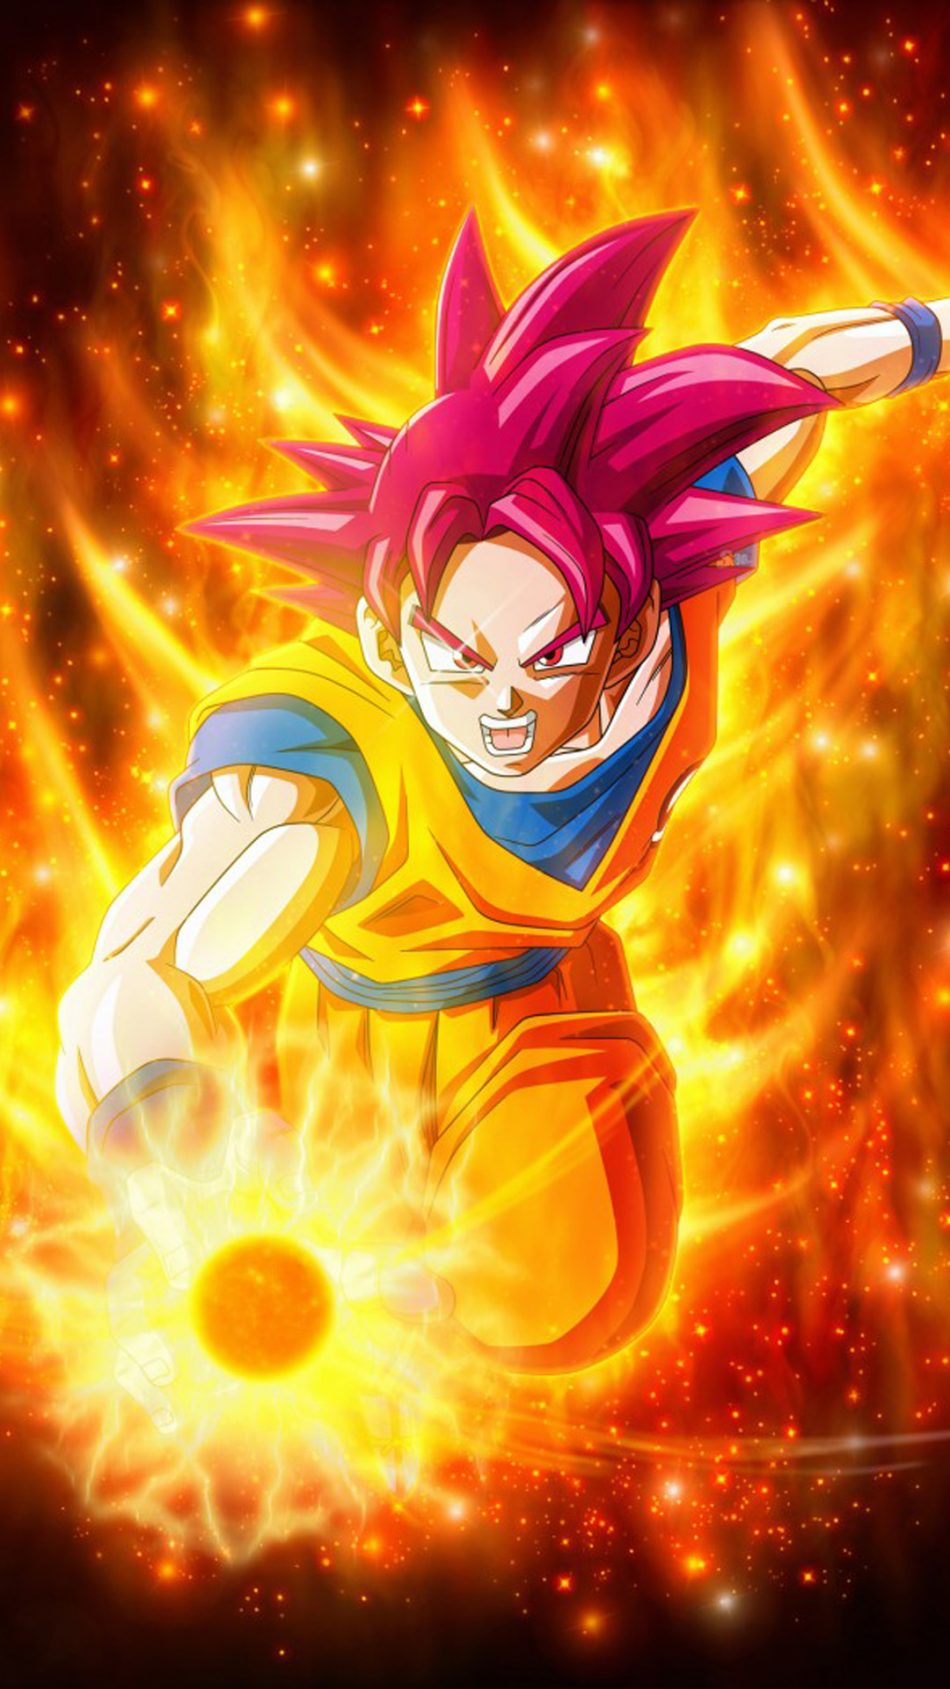 Download Super Saiyan God In Dragon Ball Super Free Pure 4k Ultra Hd